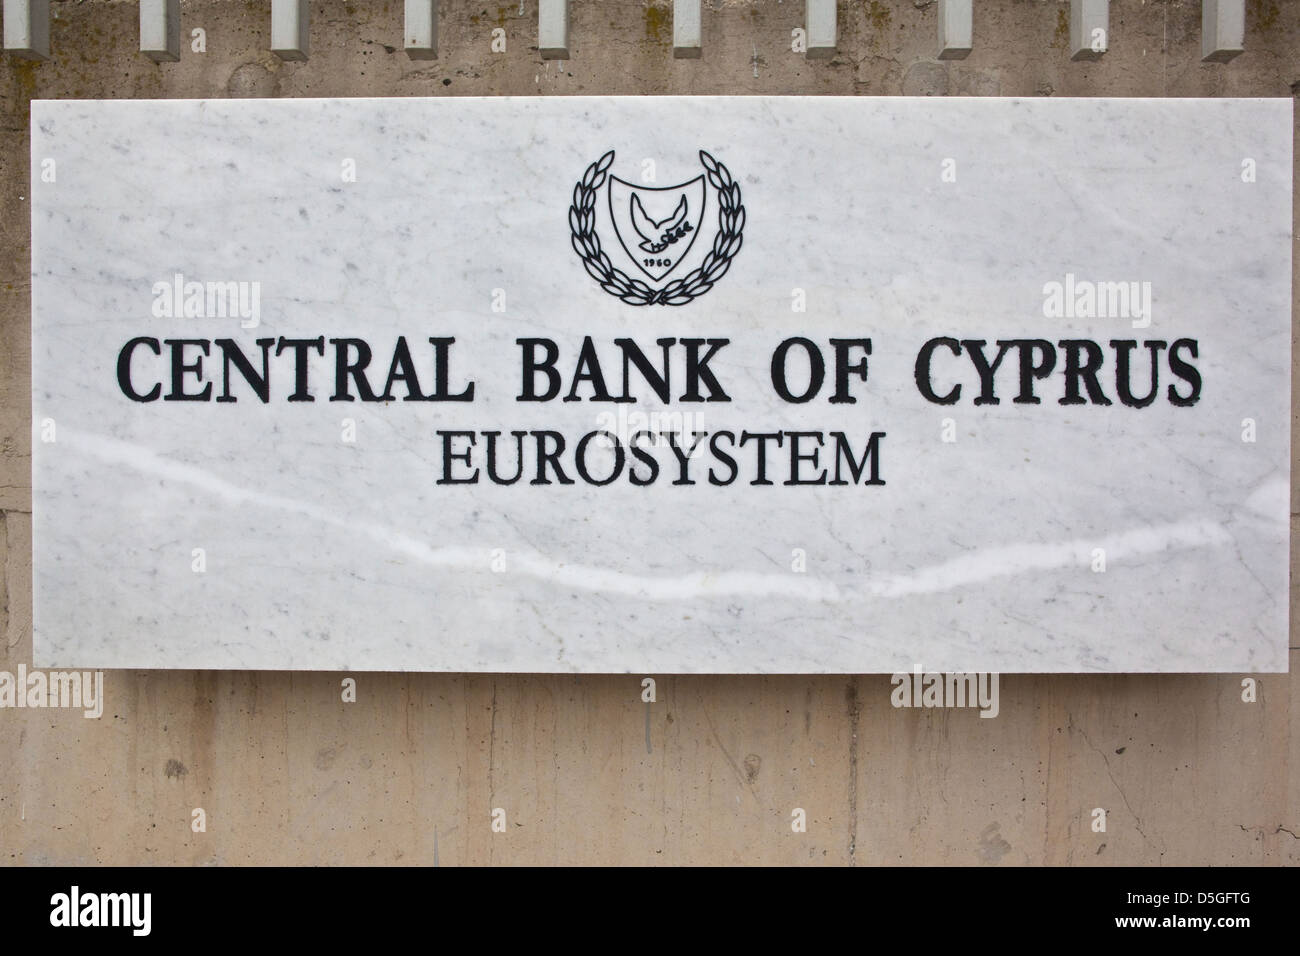 Central Bank of Cyprus, Nicosia, Cyprus - Stock Image